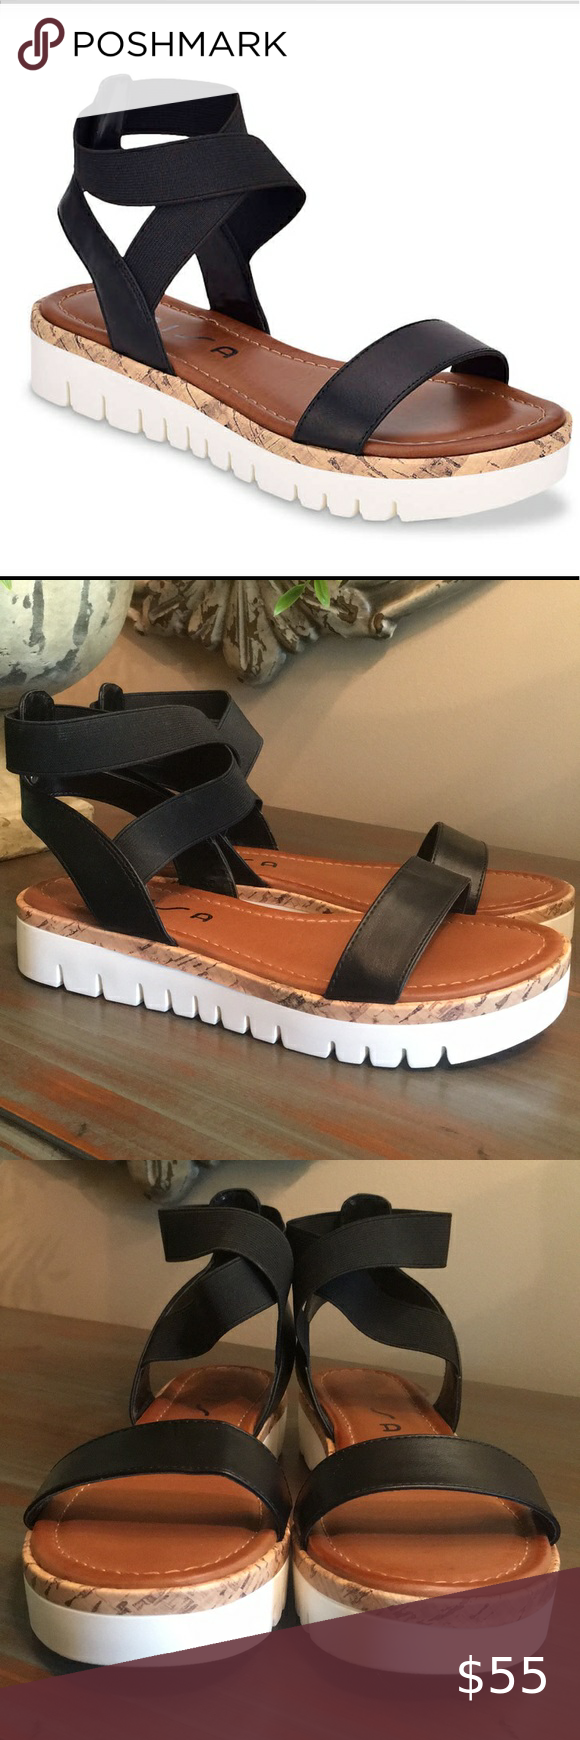 Unisa Brizza Sandal New In 2020 Sandals Clothes Design Black And Brown